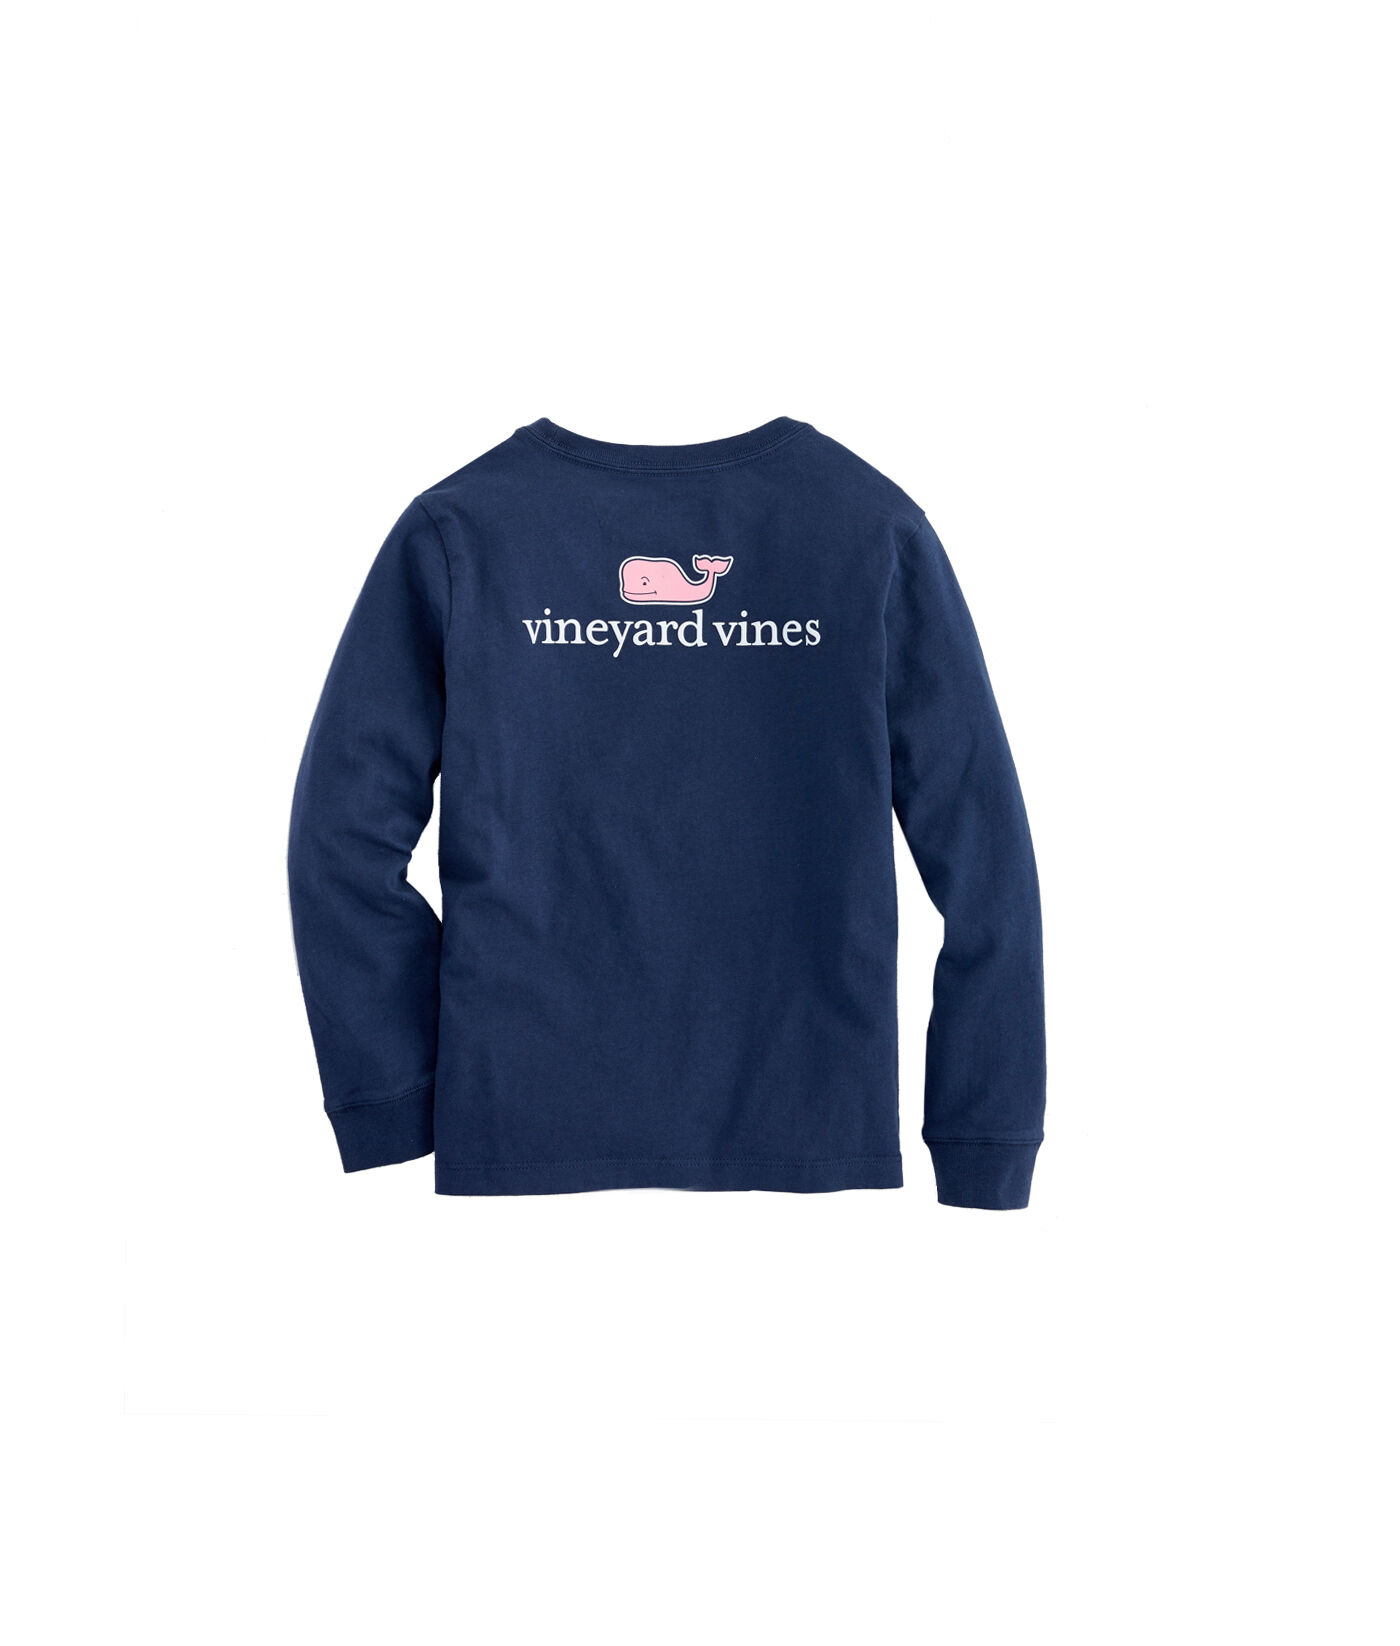 also kids long sleeve vv logo graphic  shirt rh vineyardvines